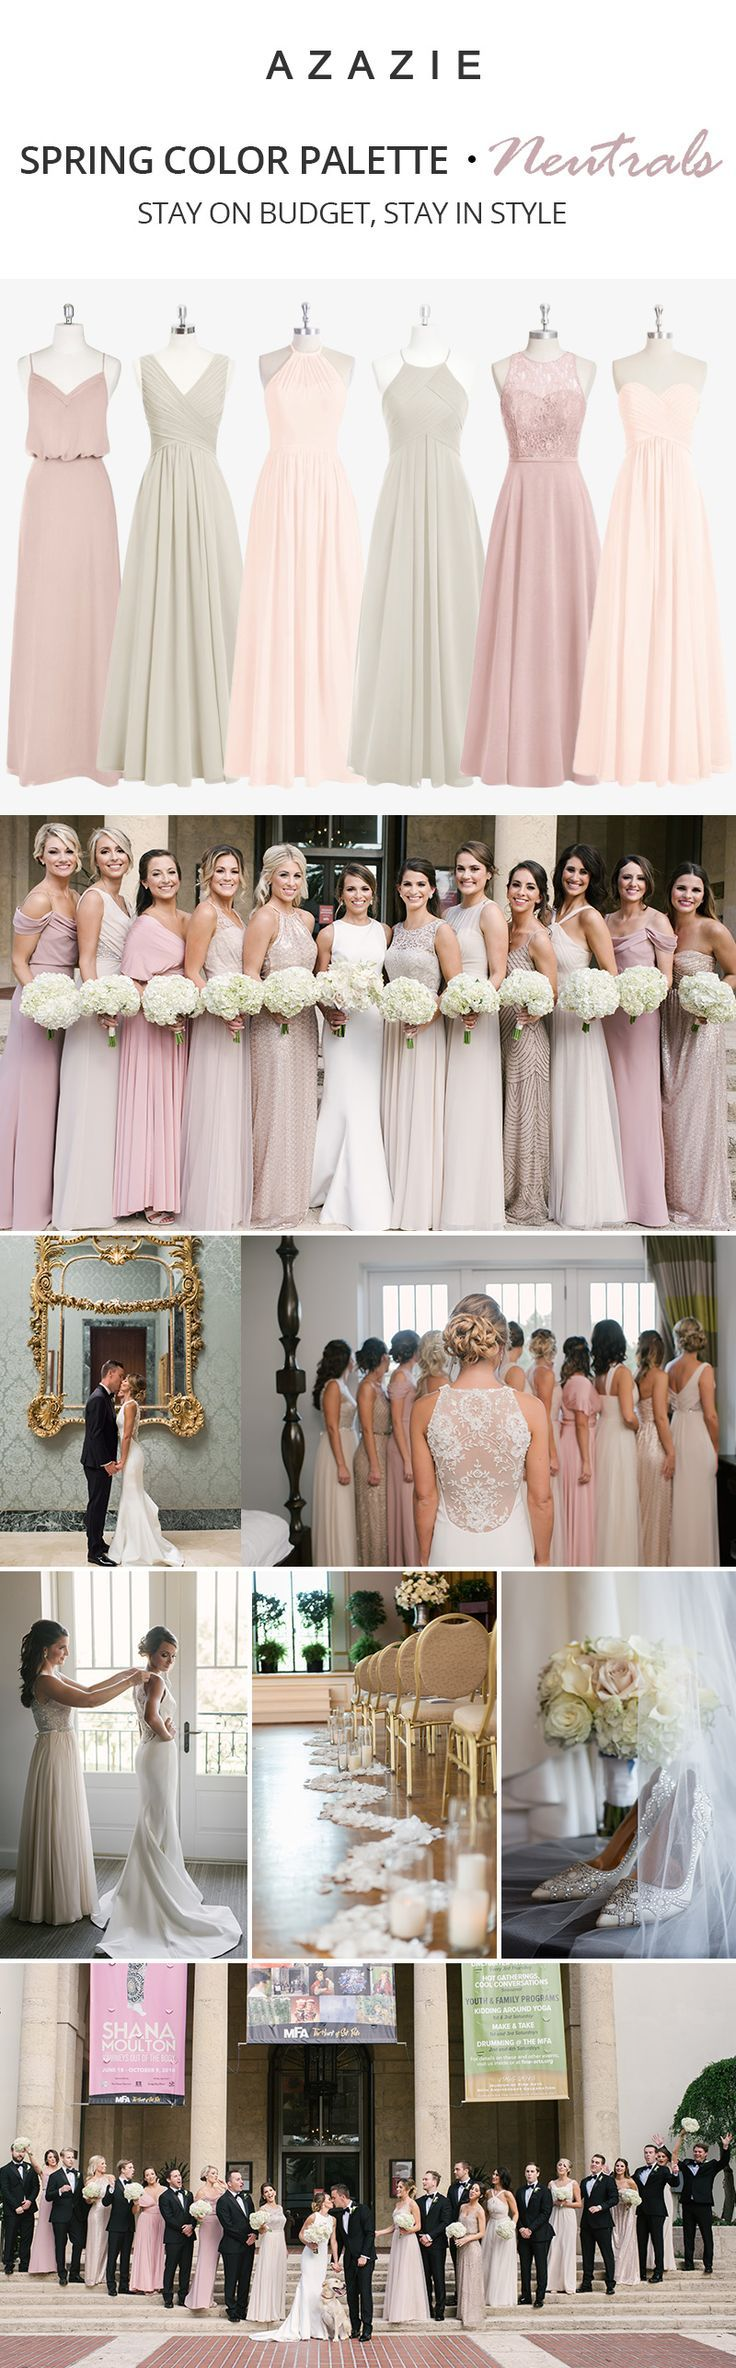 Neutrals never go out of style! Check out our 200+ styles in gorgeous neutral colors, perfect for any time of the year! Wedding tip: Order color swatches before you purchase your dresses for stress free wedding planning! | Photos courtesy of http://kaitlynphippsphotography.com